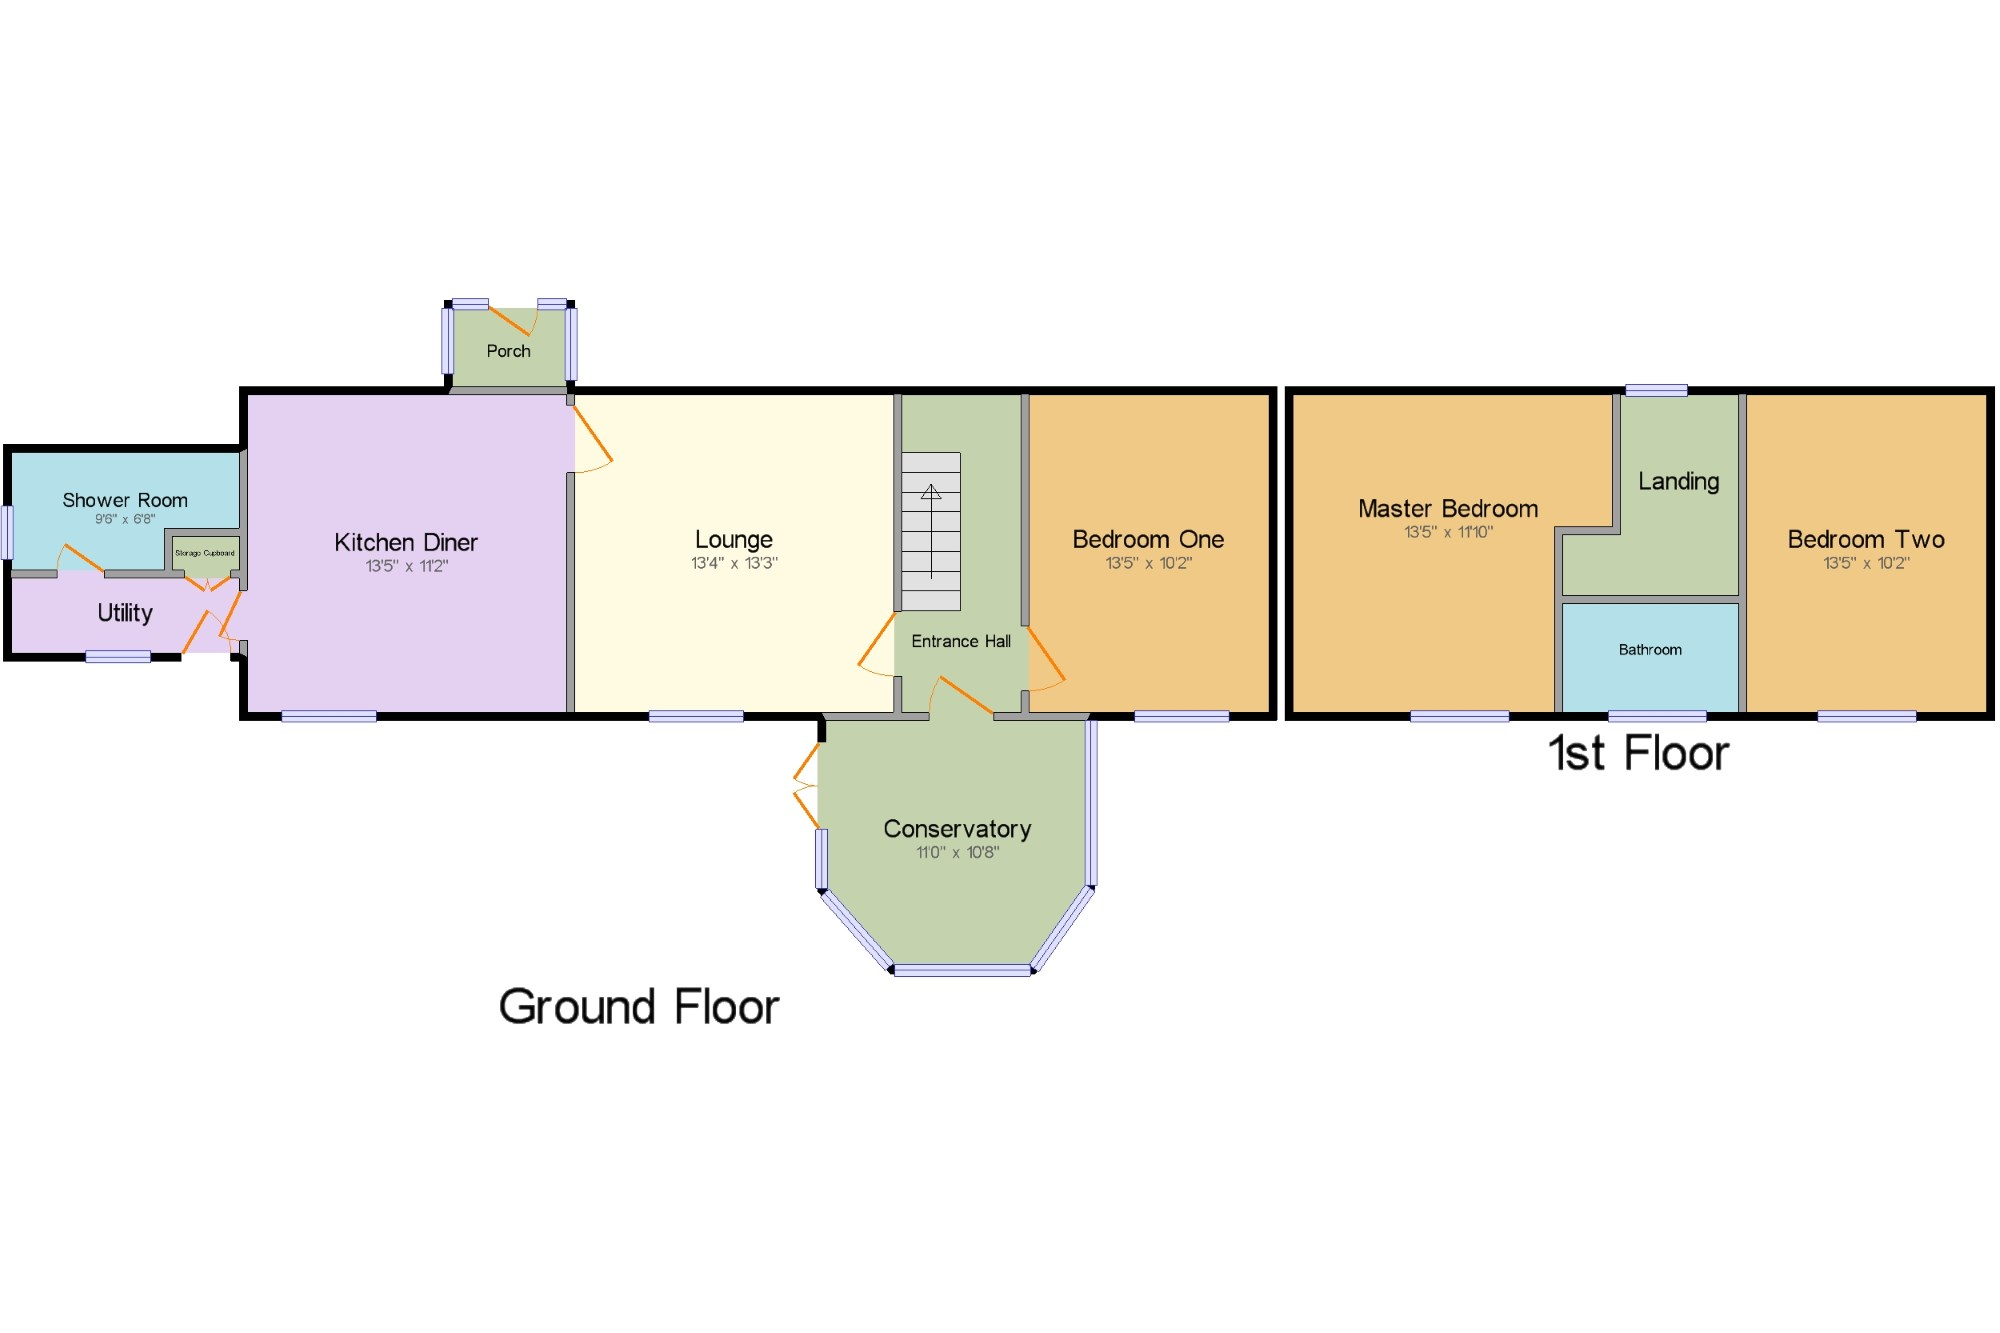 Bedroom detached house for sale in flushing falmouth cornwall - Camborne Cornwall Camborne Tr14 2 Bedroom Semi Detached